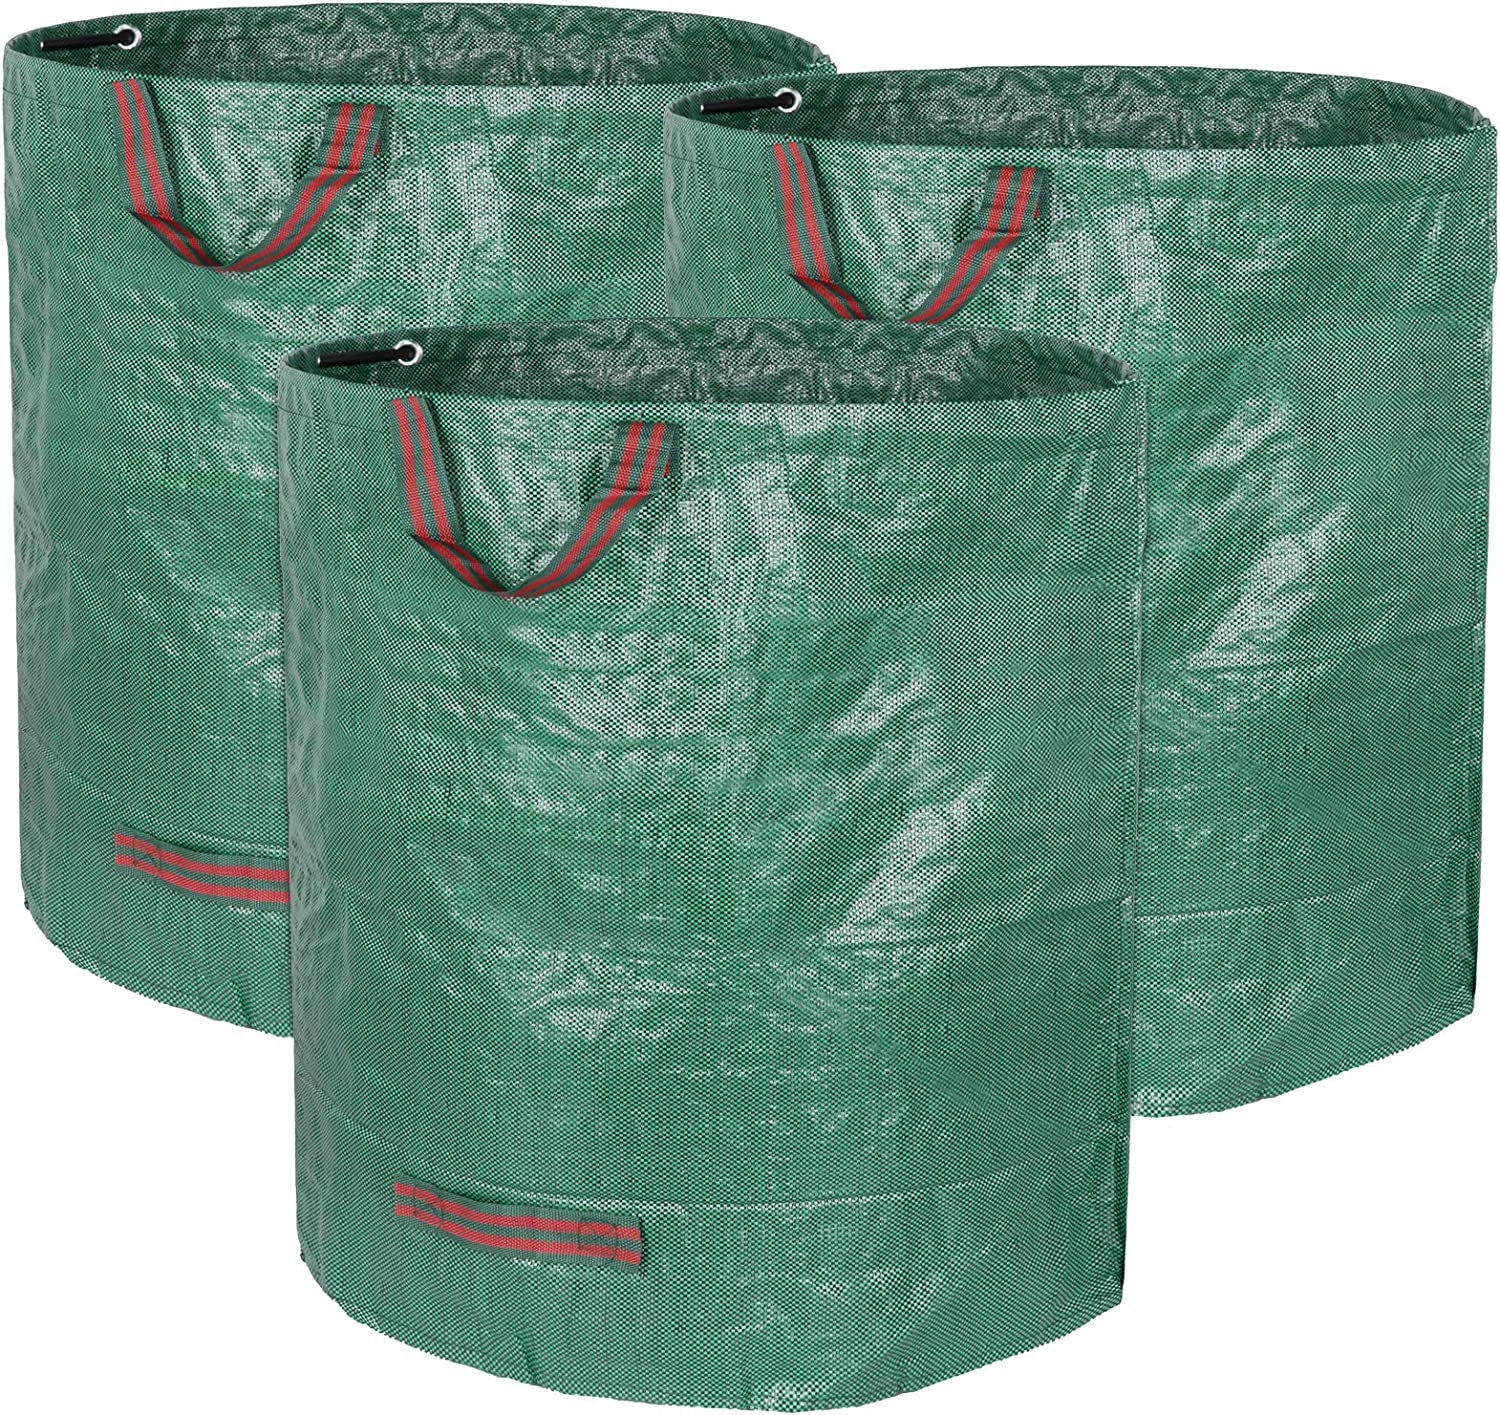 Decorlife 3 Pack 72 Gallons Reusable Garden Waste Bag, Heavy Duty Yard Waste Bag with Dual Handles and Double Bottom Layers, Reusable Garden Leaf Bag for Collecting Leaves Grass Clippings Yard Debris